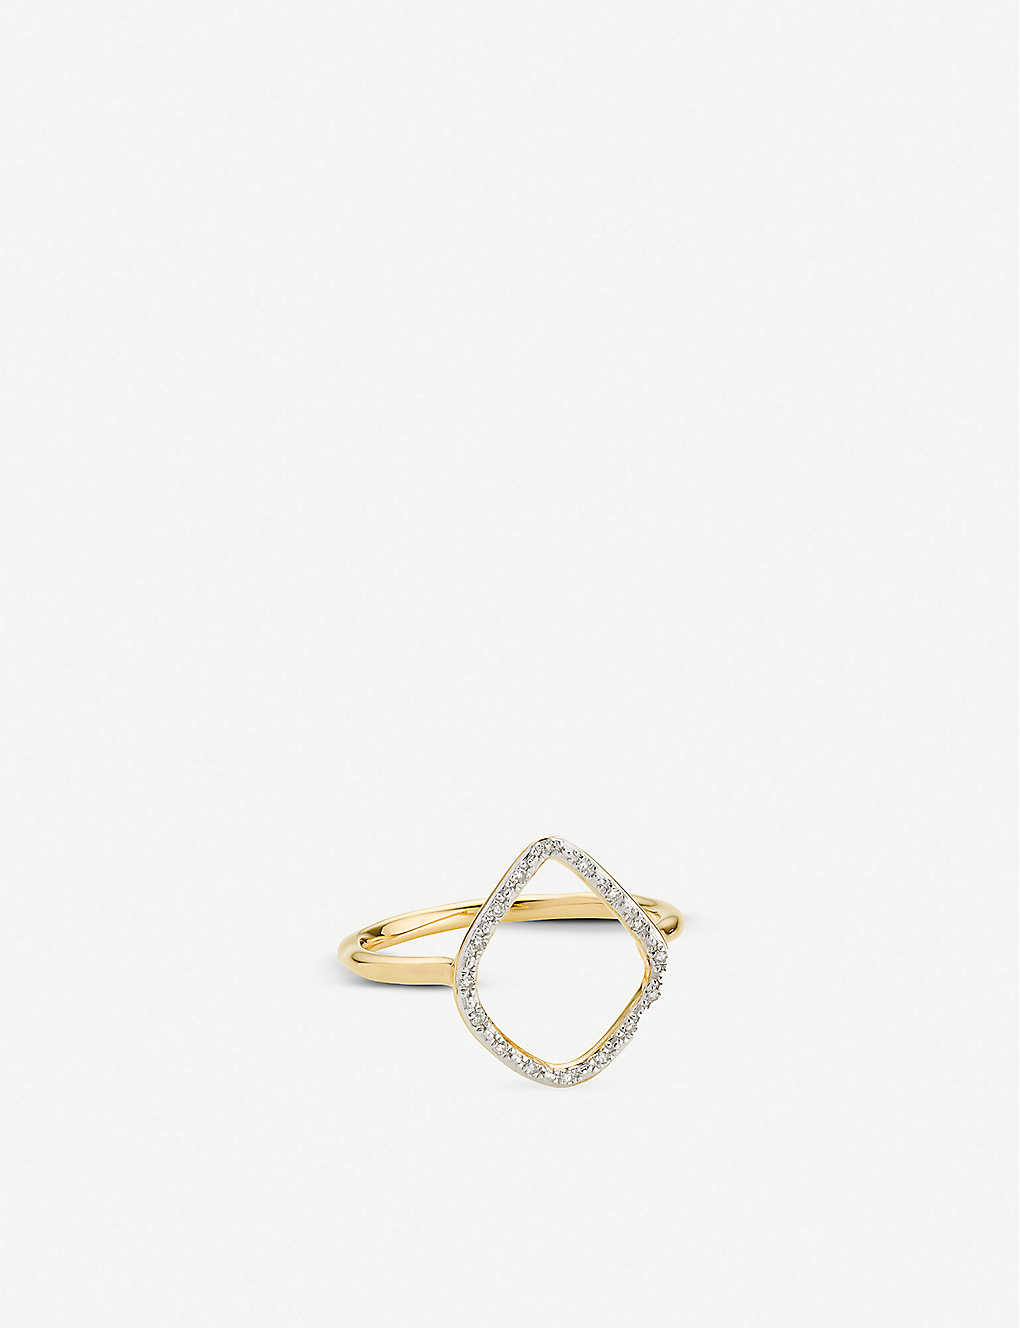 MONICA VINADER: Riva hoop 18ct yellow gold-plated vermeil sterling silver and diamond ring